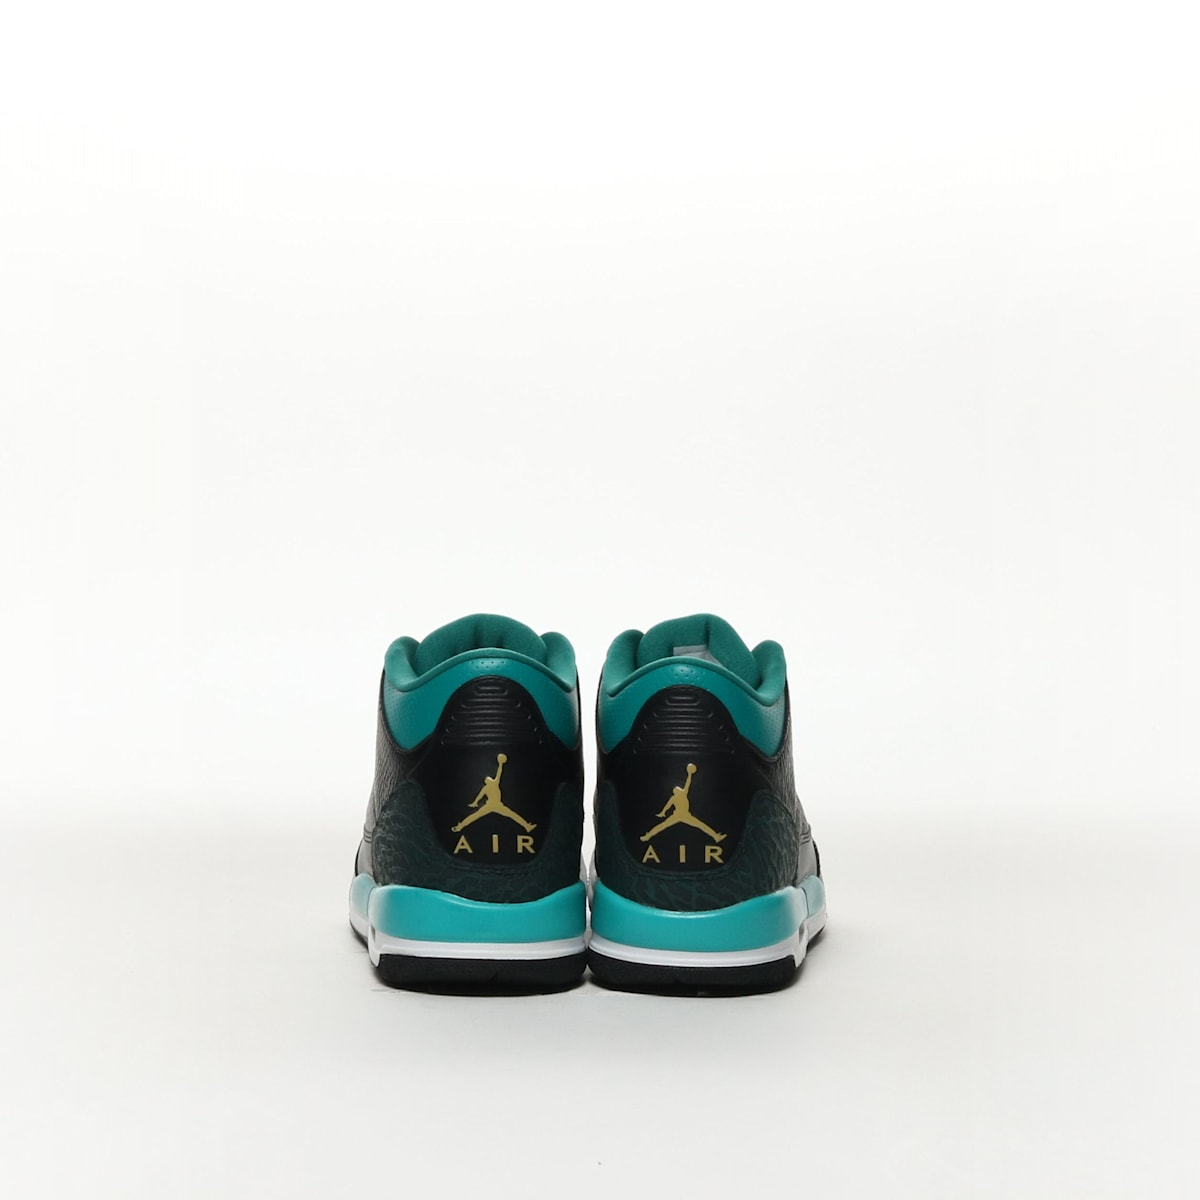 sale retailer 9dde9 dcf41 ... Air Jordan 3 Retro.  Actual Shoe